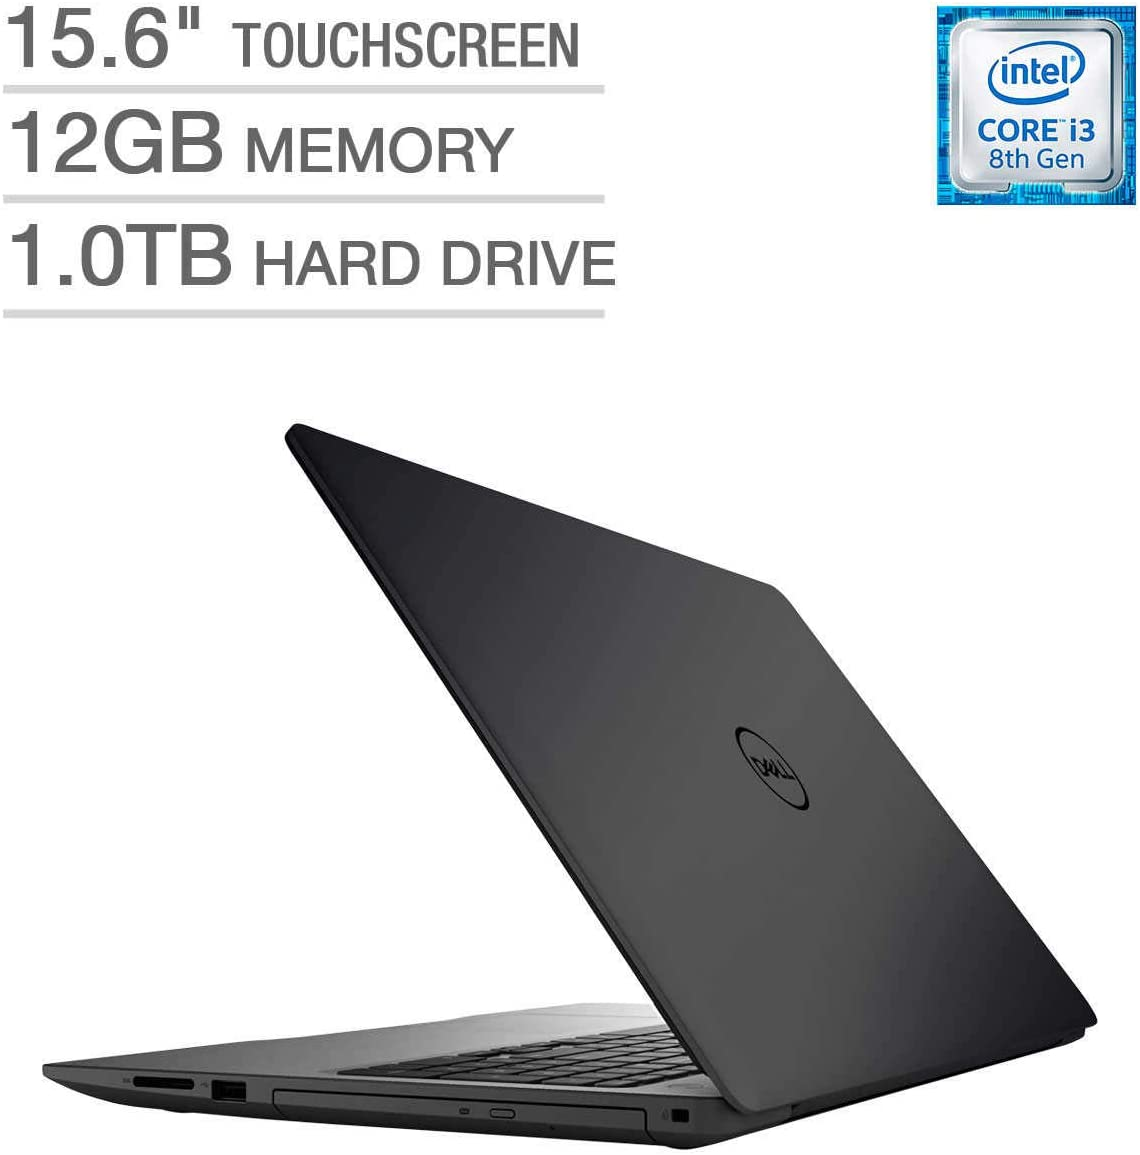 Dell Inspiron 15 5000 Series Touchscreen Laptop - Intel Core i3-8130U Processor 2.2GHz 12GB DDR4 1TB